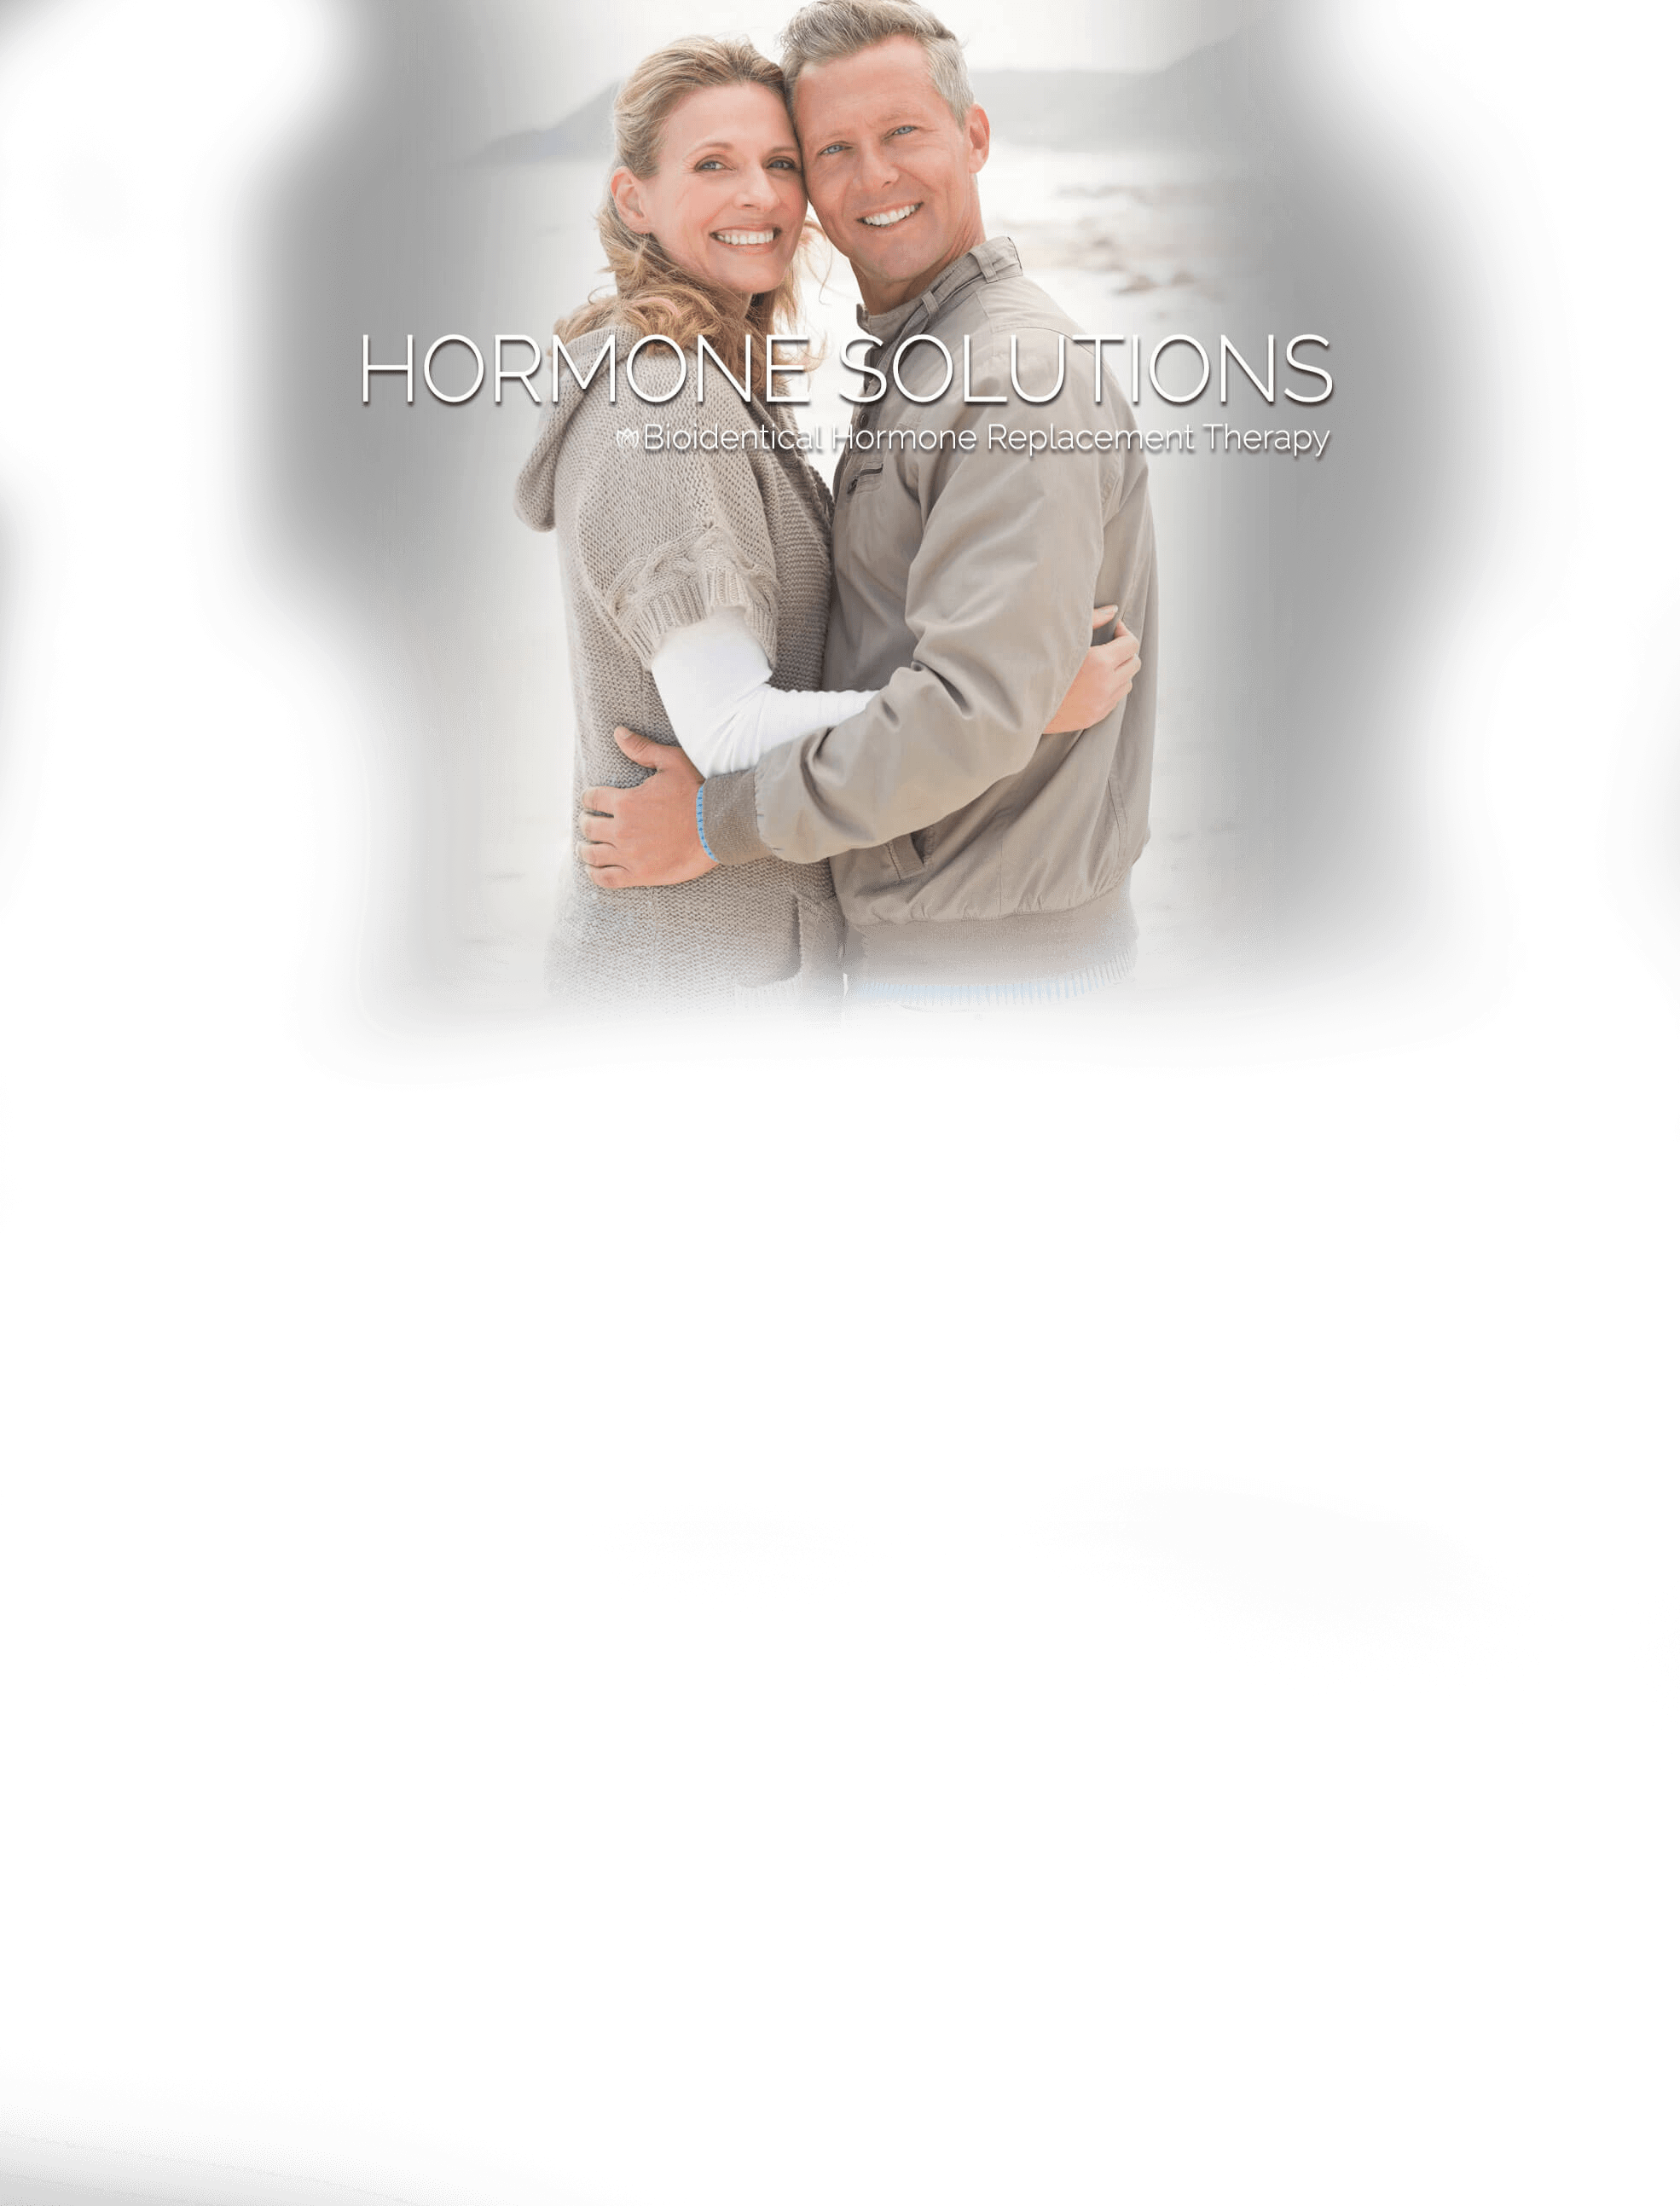 Hormone Replacement Therapy (HRT) in Houston, TX